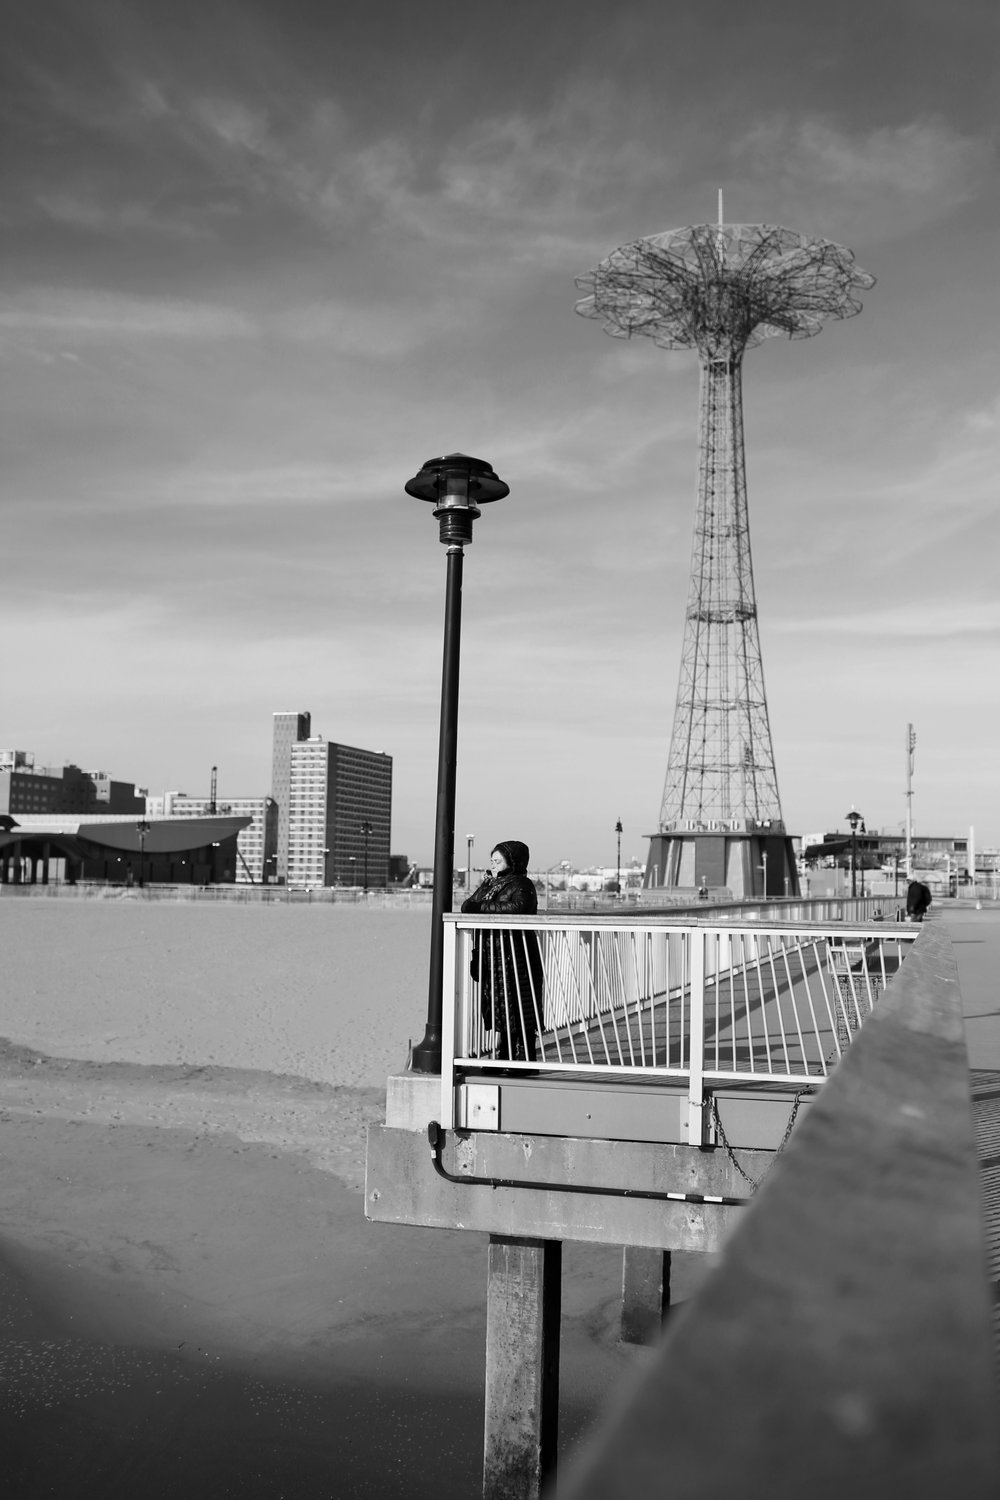 Coney Island, New York - 2019